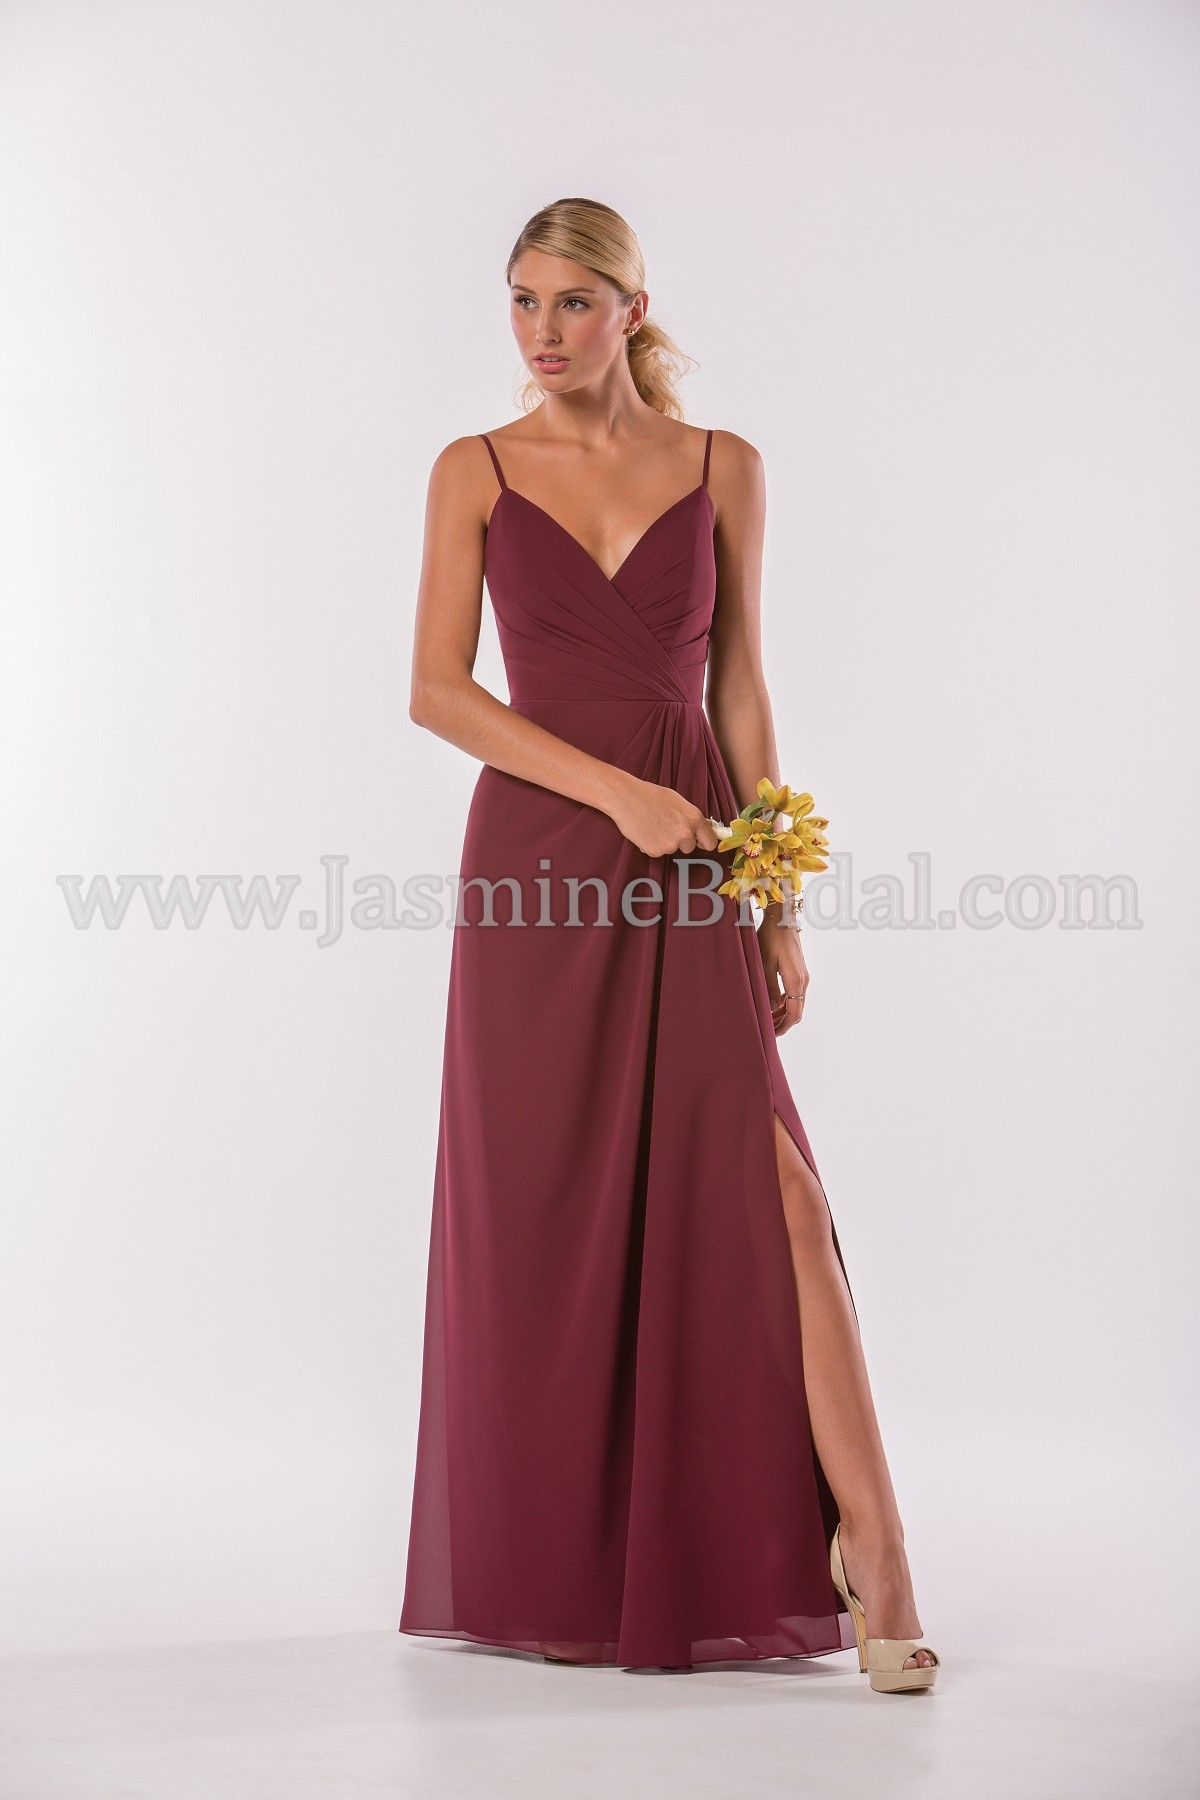 The perfect bridesmaid dresses gowns at jasmine bridal dressimg ombrellifo Image collections